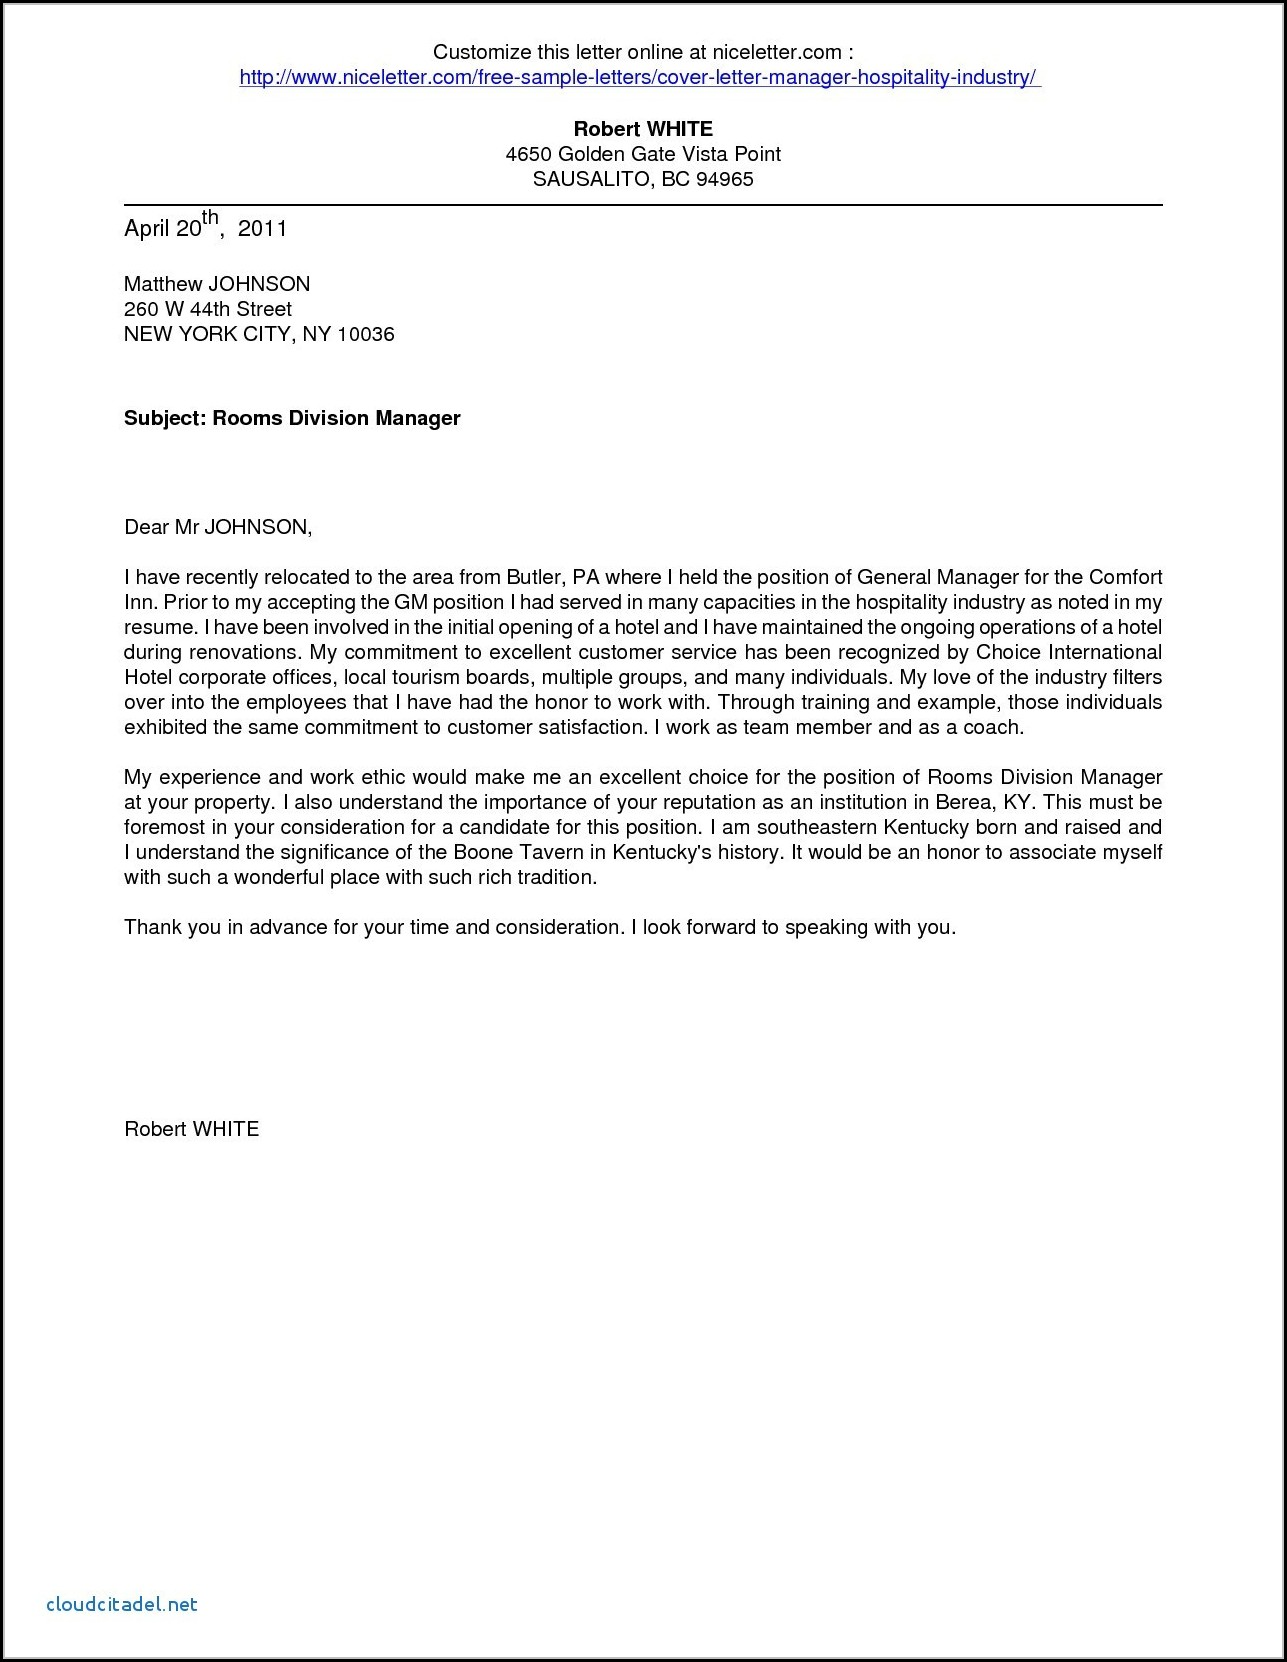 Job Application Letter For Hotel And Restaurant Management